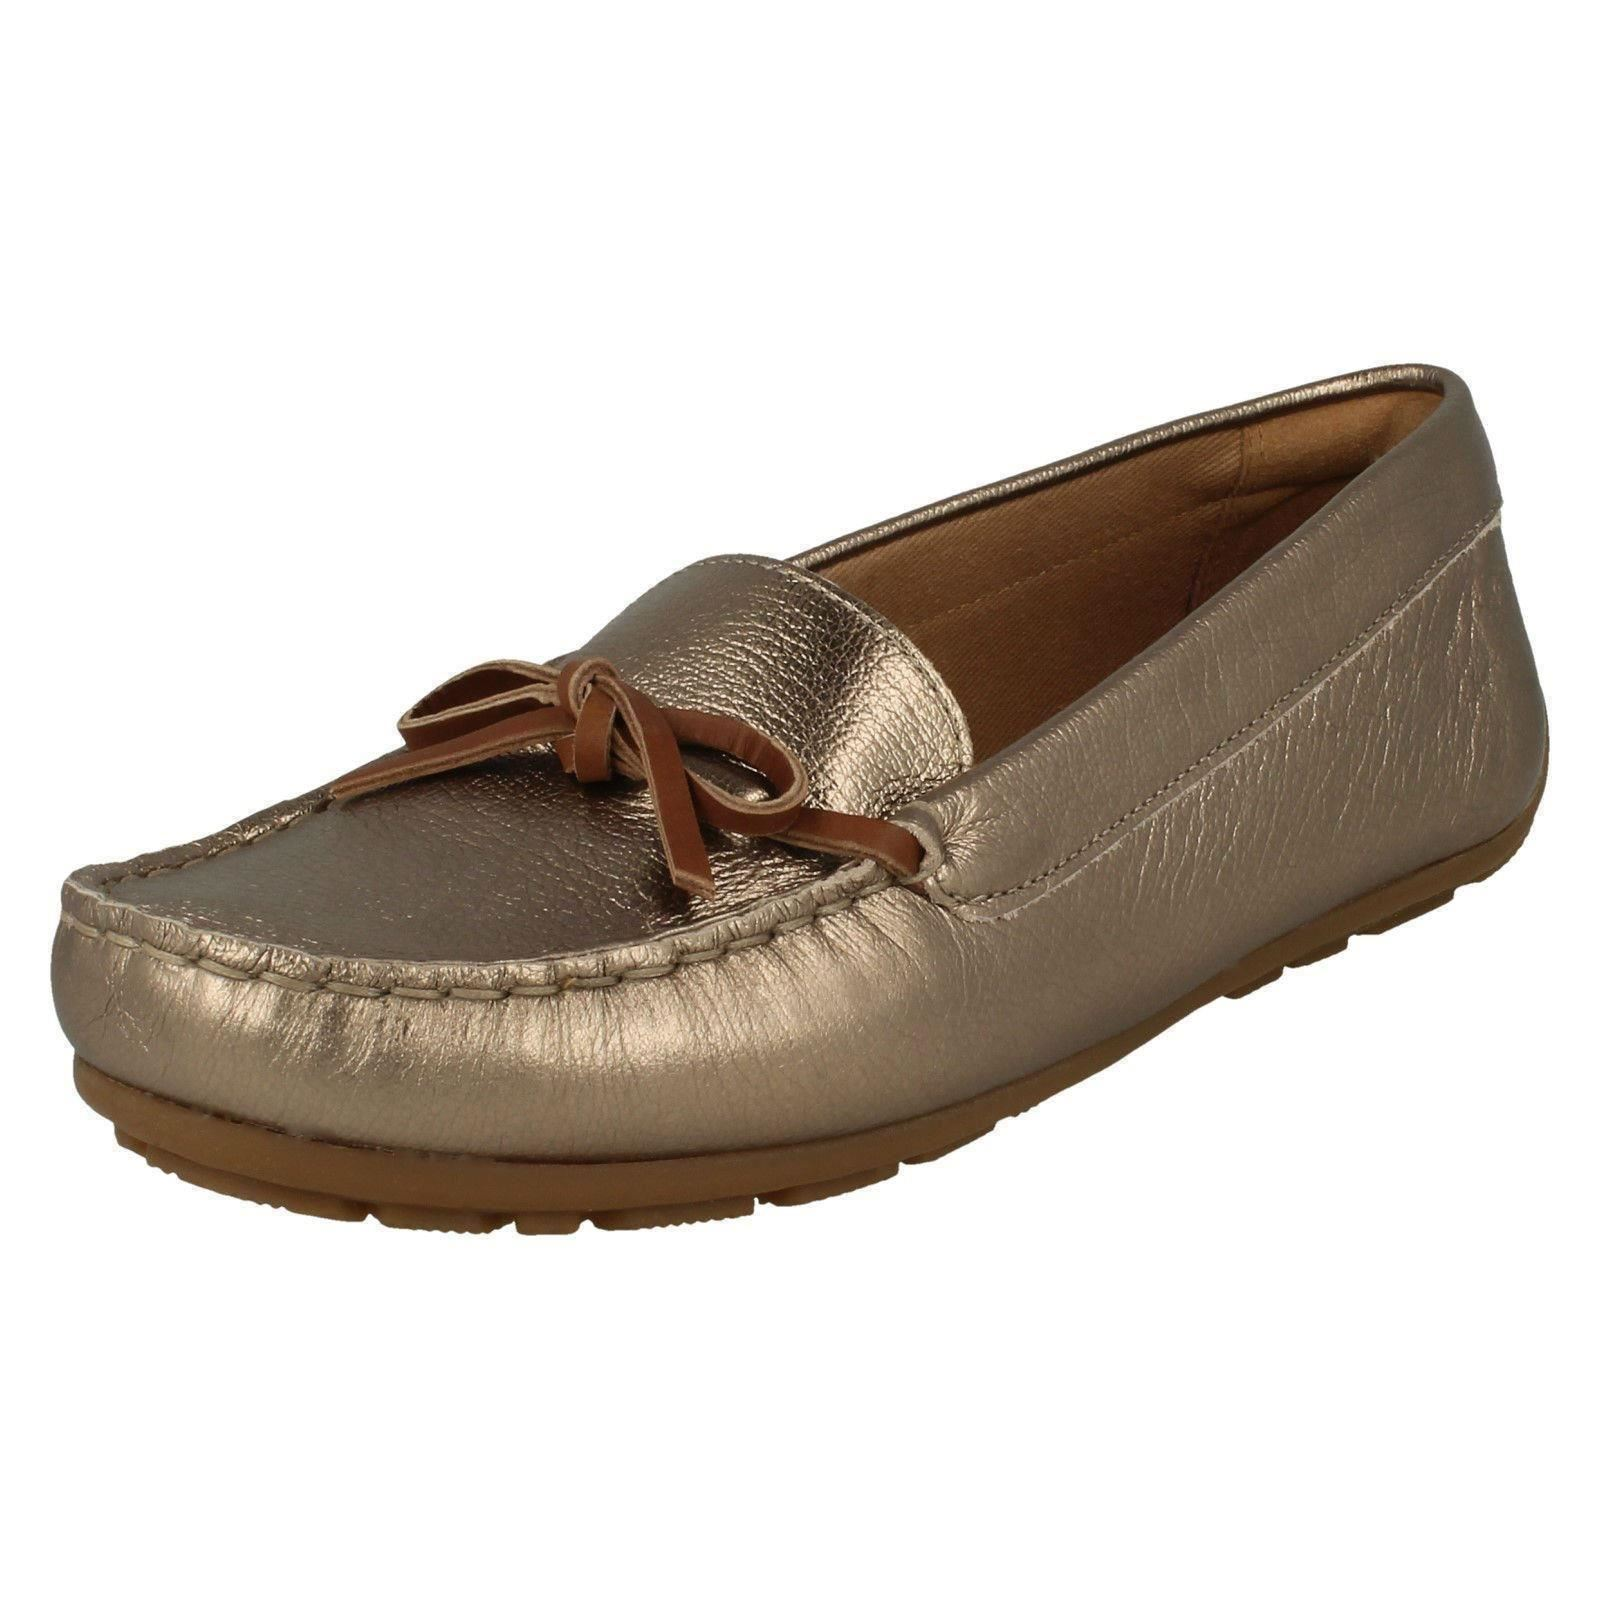 Ladies Clarks Bow Front Slip On Moccasin Shoes Style - Dameo Swing; Picture  2 of 10 ...